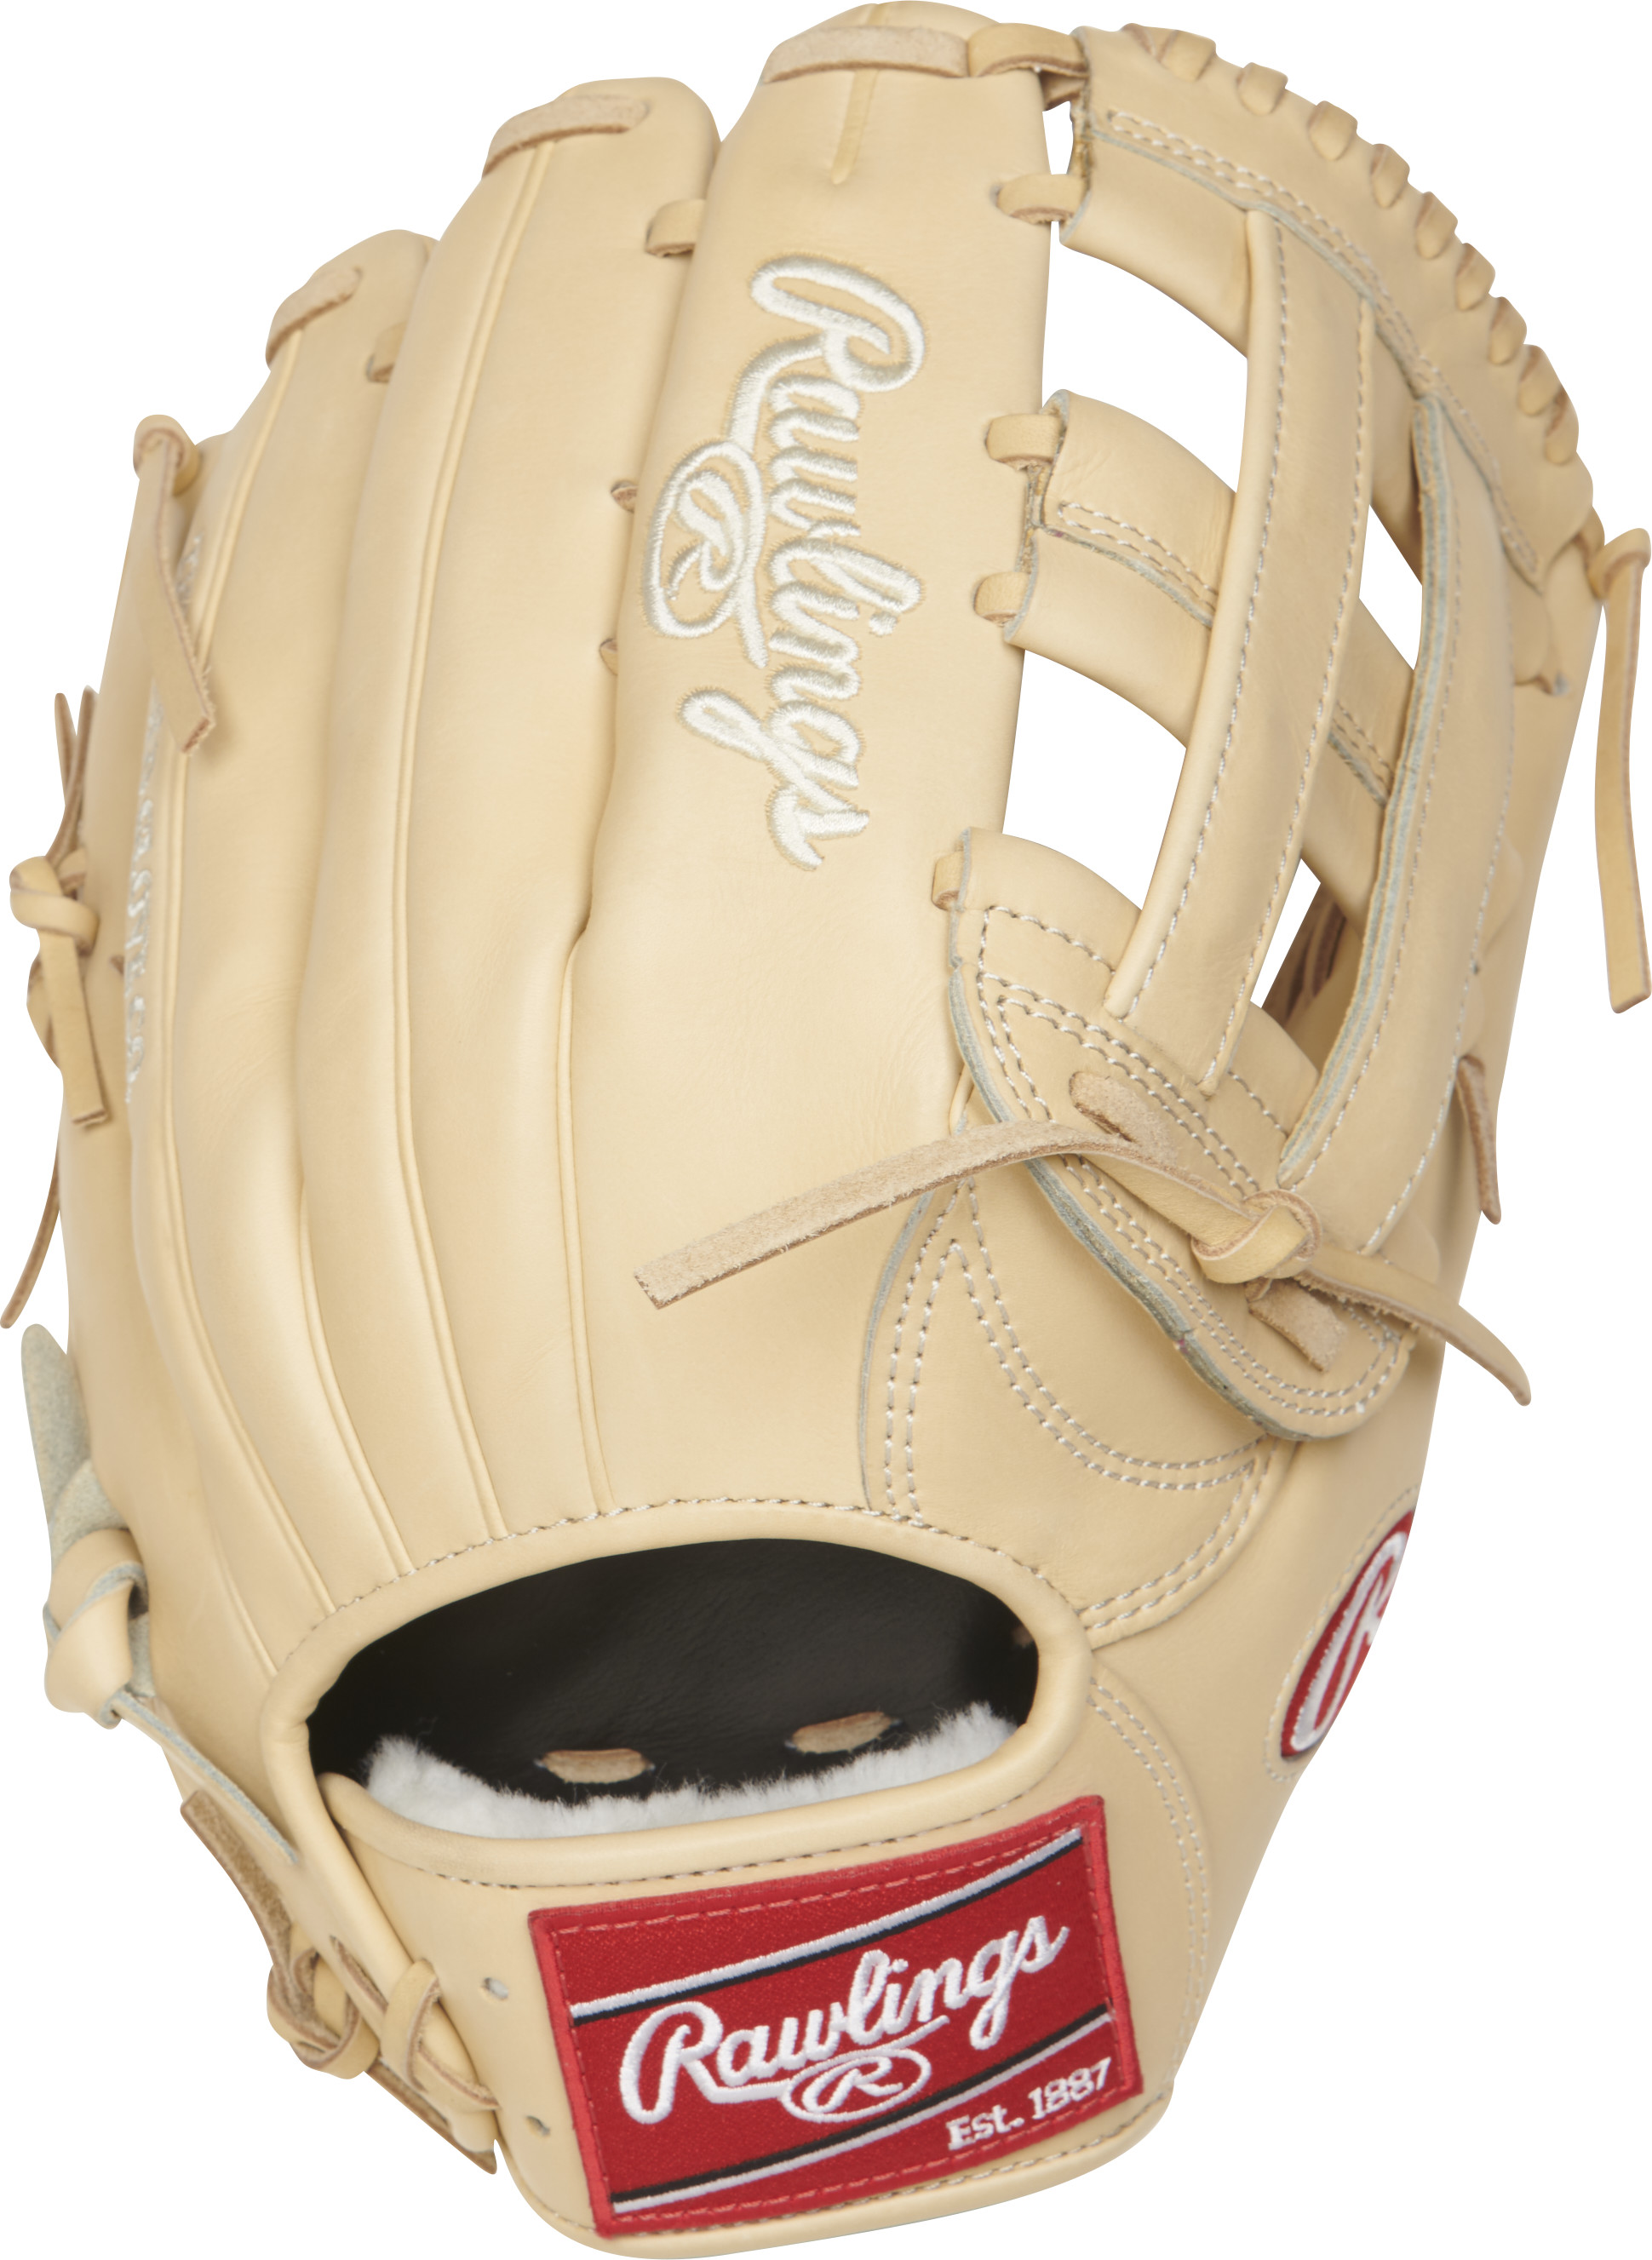 http://www.bestbatdeals.com/images/gloves/rawlings/PROS3039-6CC-2.jpg